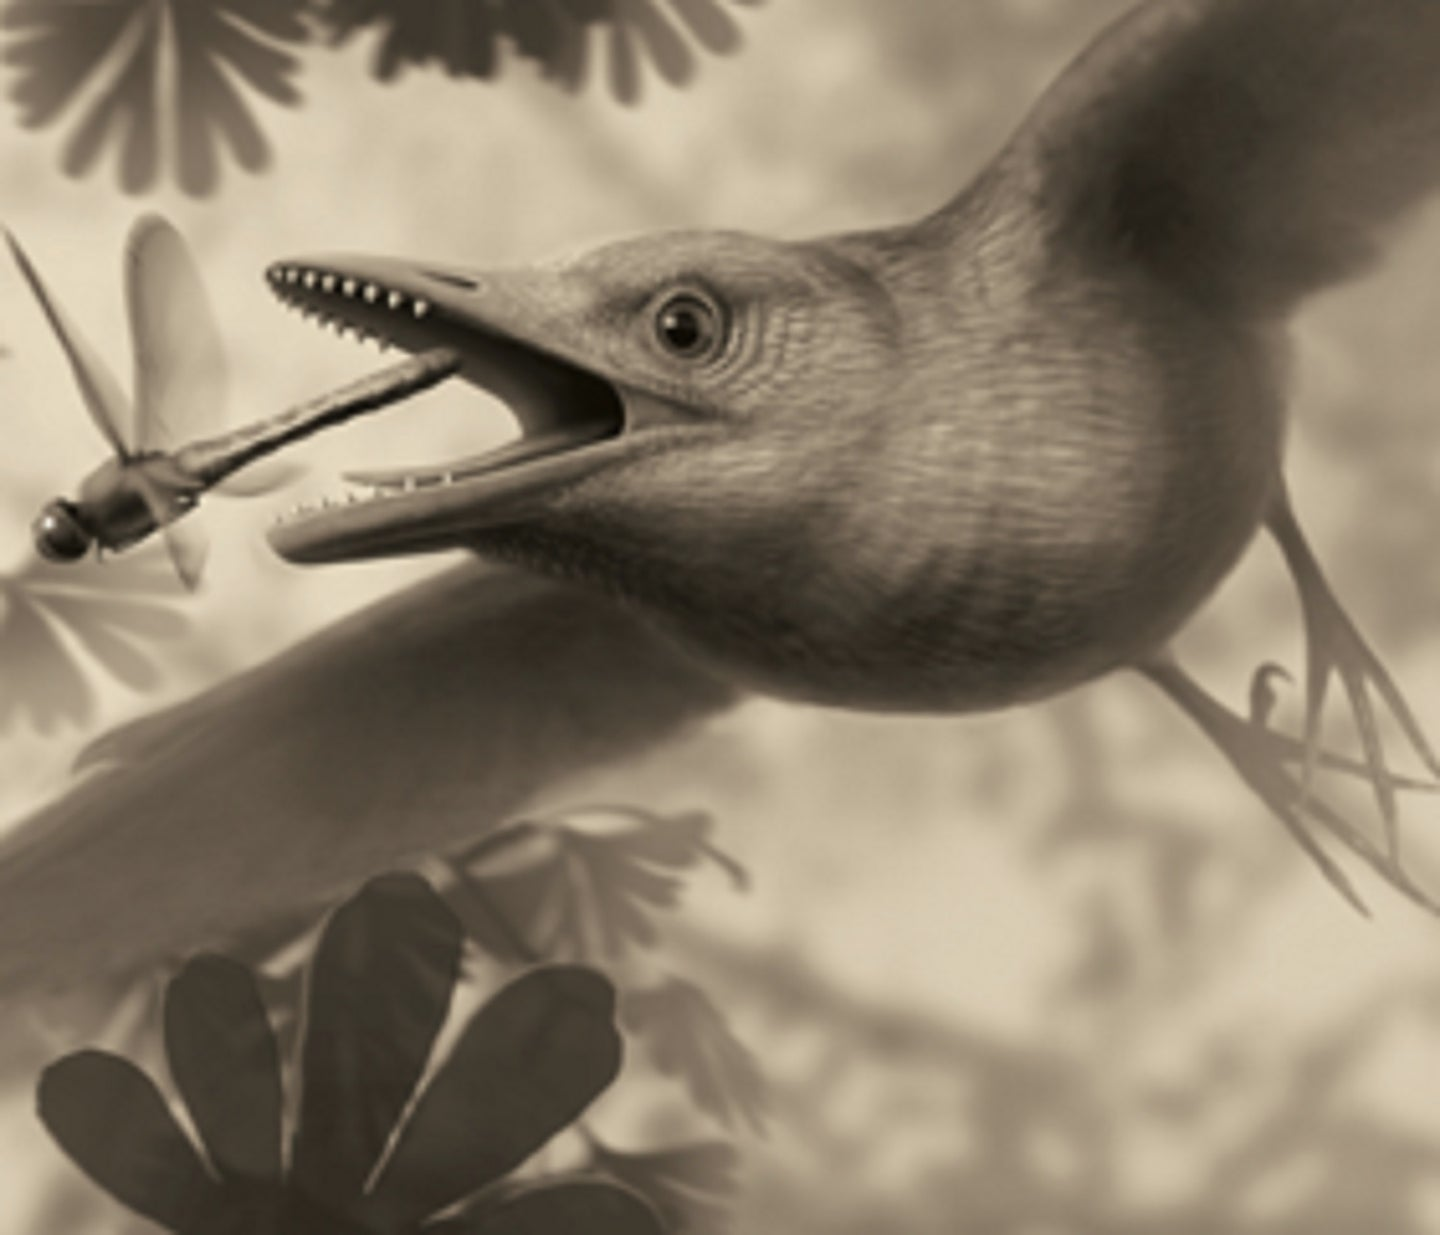 A reimagined prehistoric bird chasing a dragonfly over plants